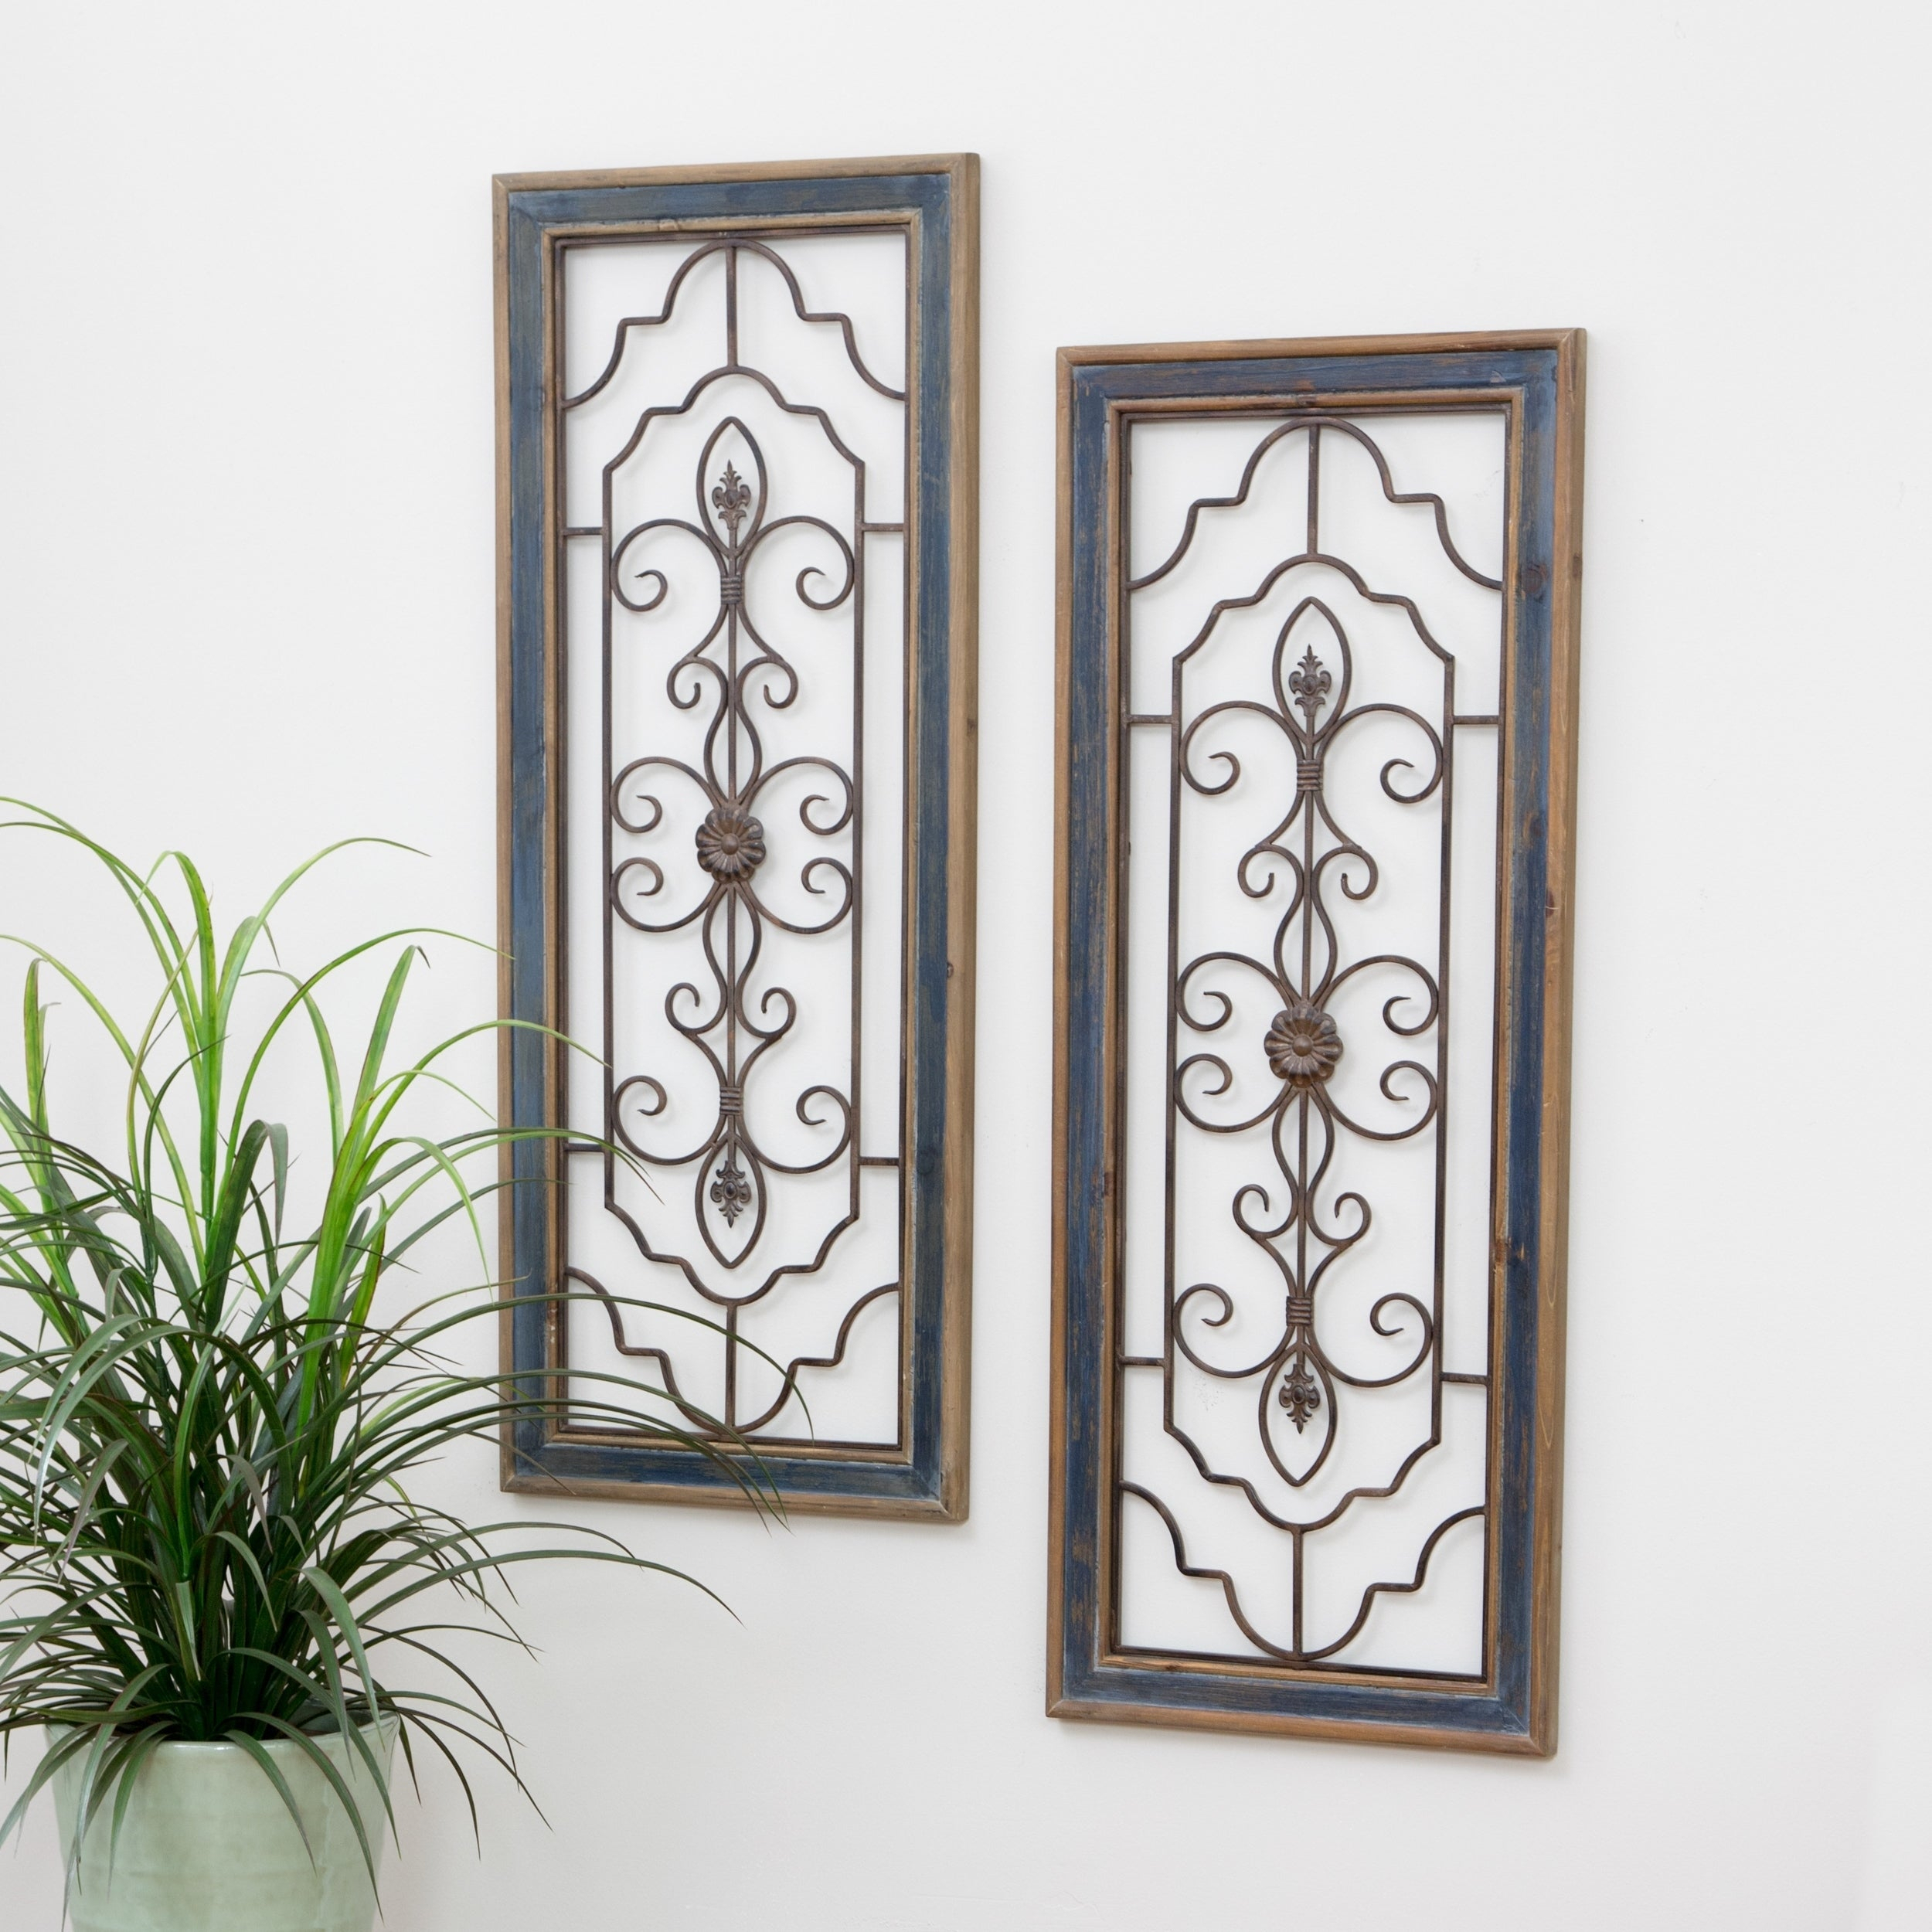 Famous Shop Grace Wall Decor (Set Of 2) - Free Shipping On Orders Over $45 throughout 4 Piece Metal Wall Plaque Decor Sets